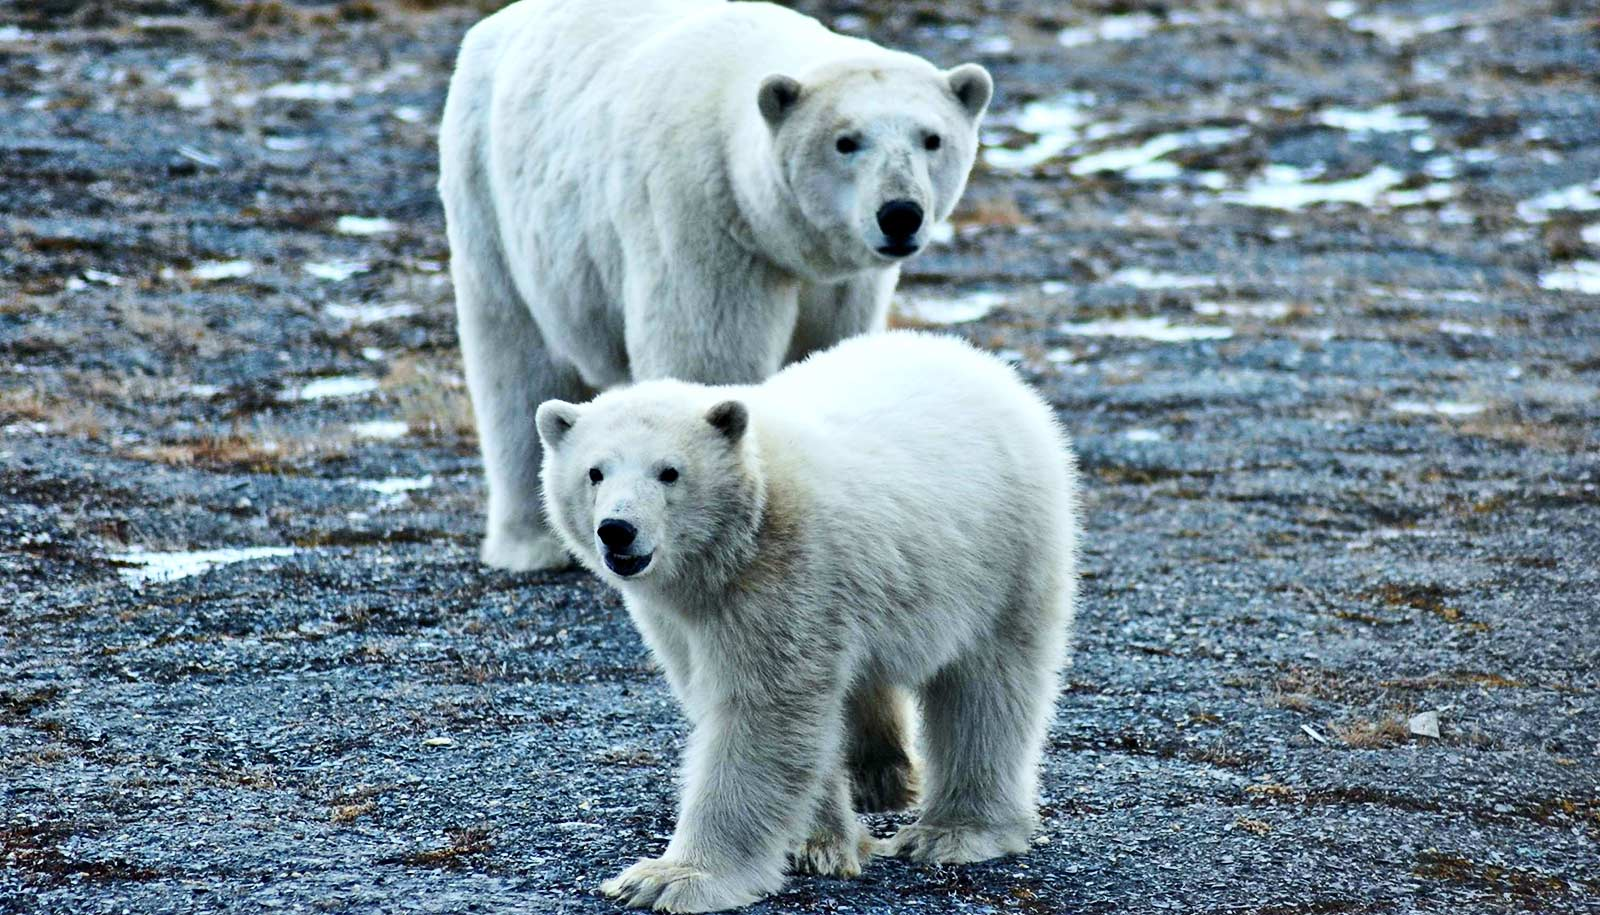 These U.S.-Russia polar bears are doing just fine